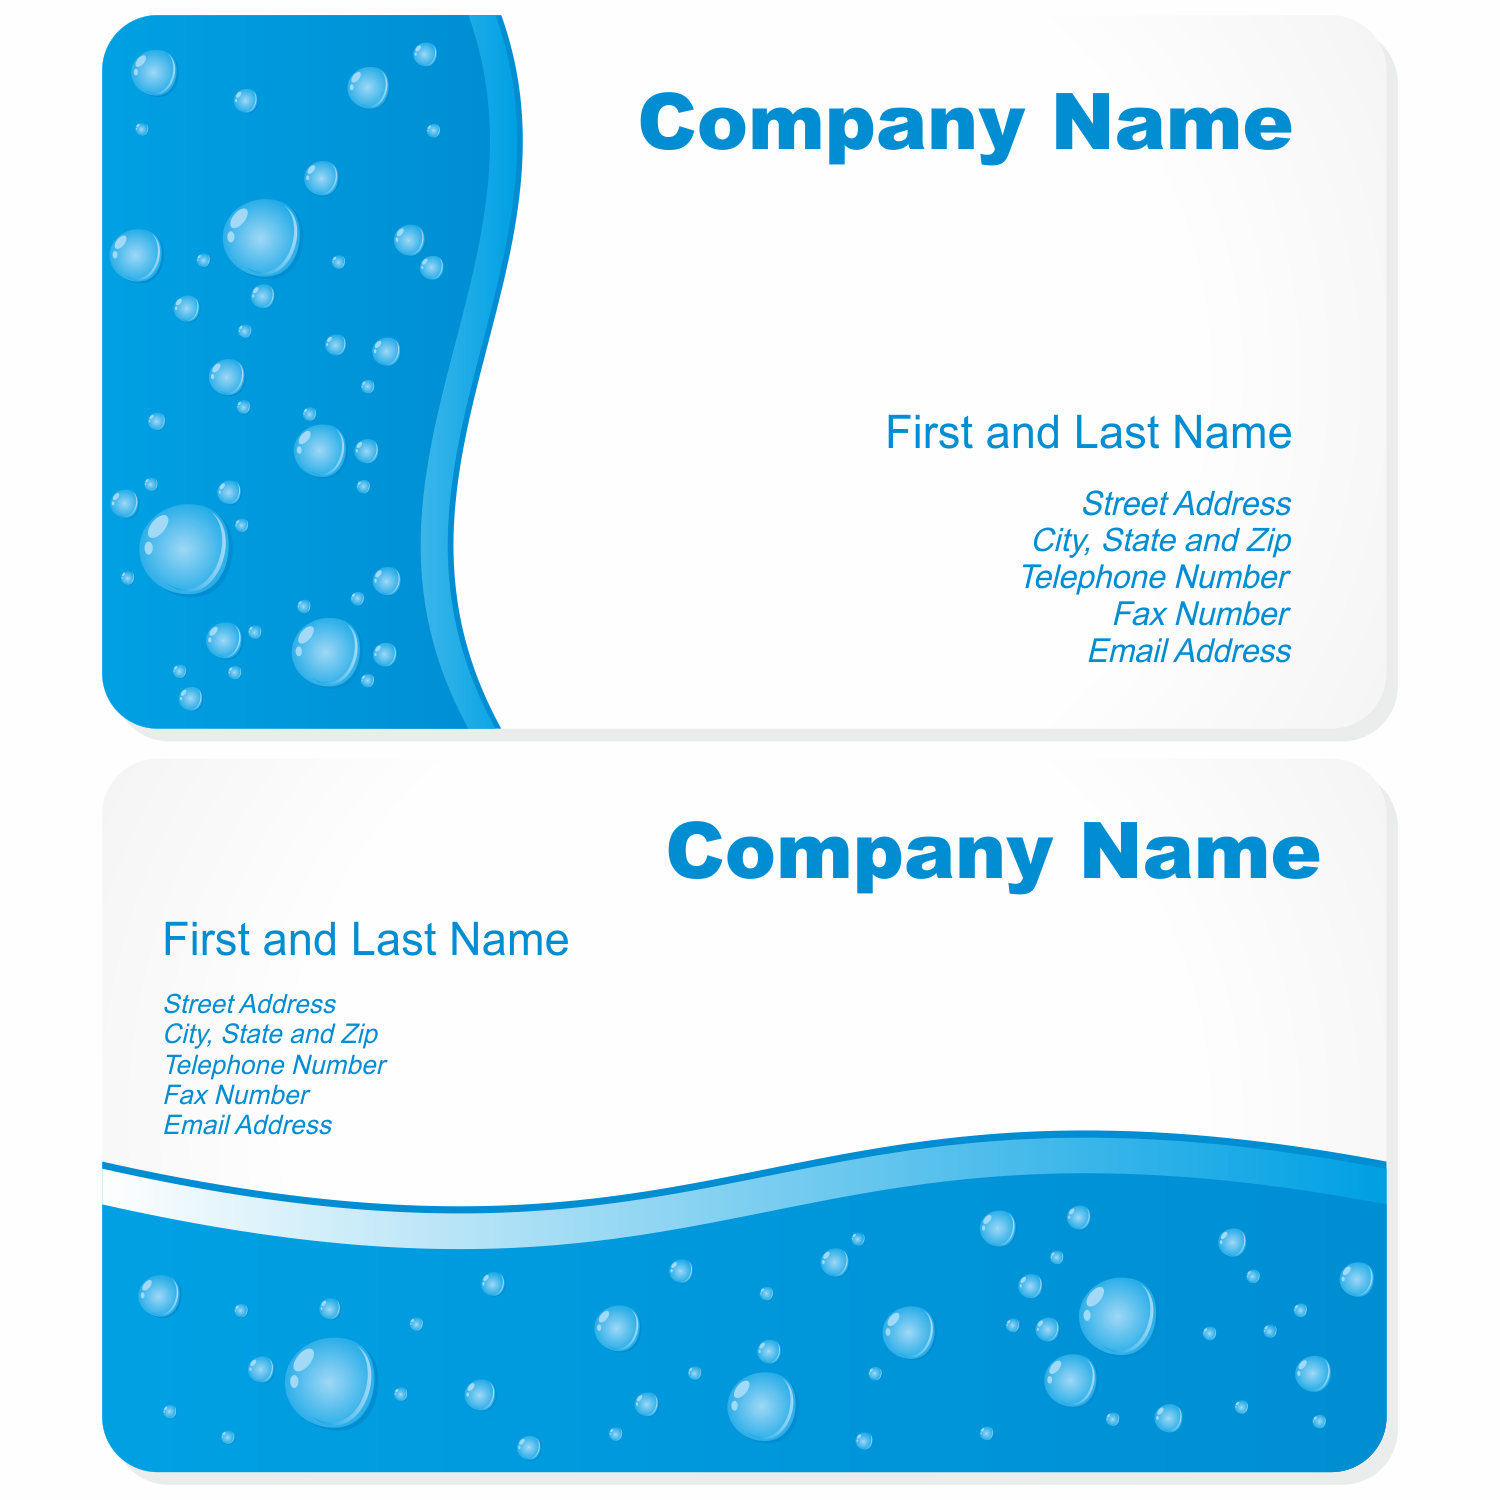 Free Business Card Template Online | Business Card Sample